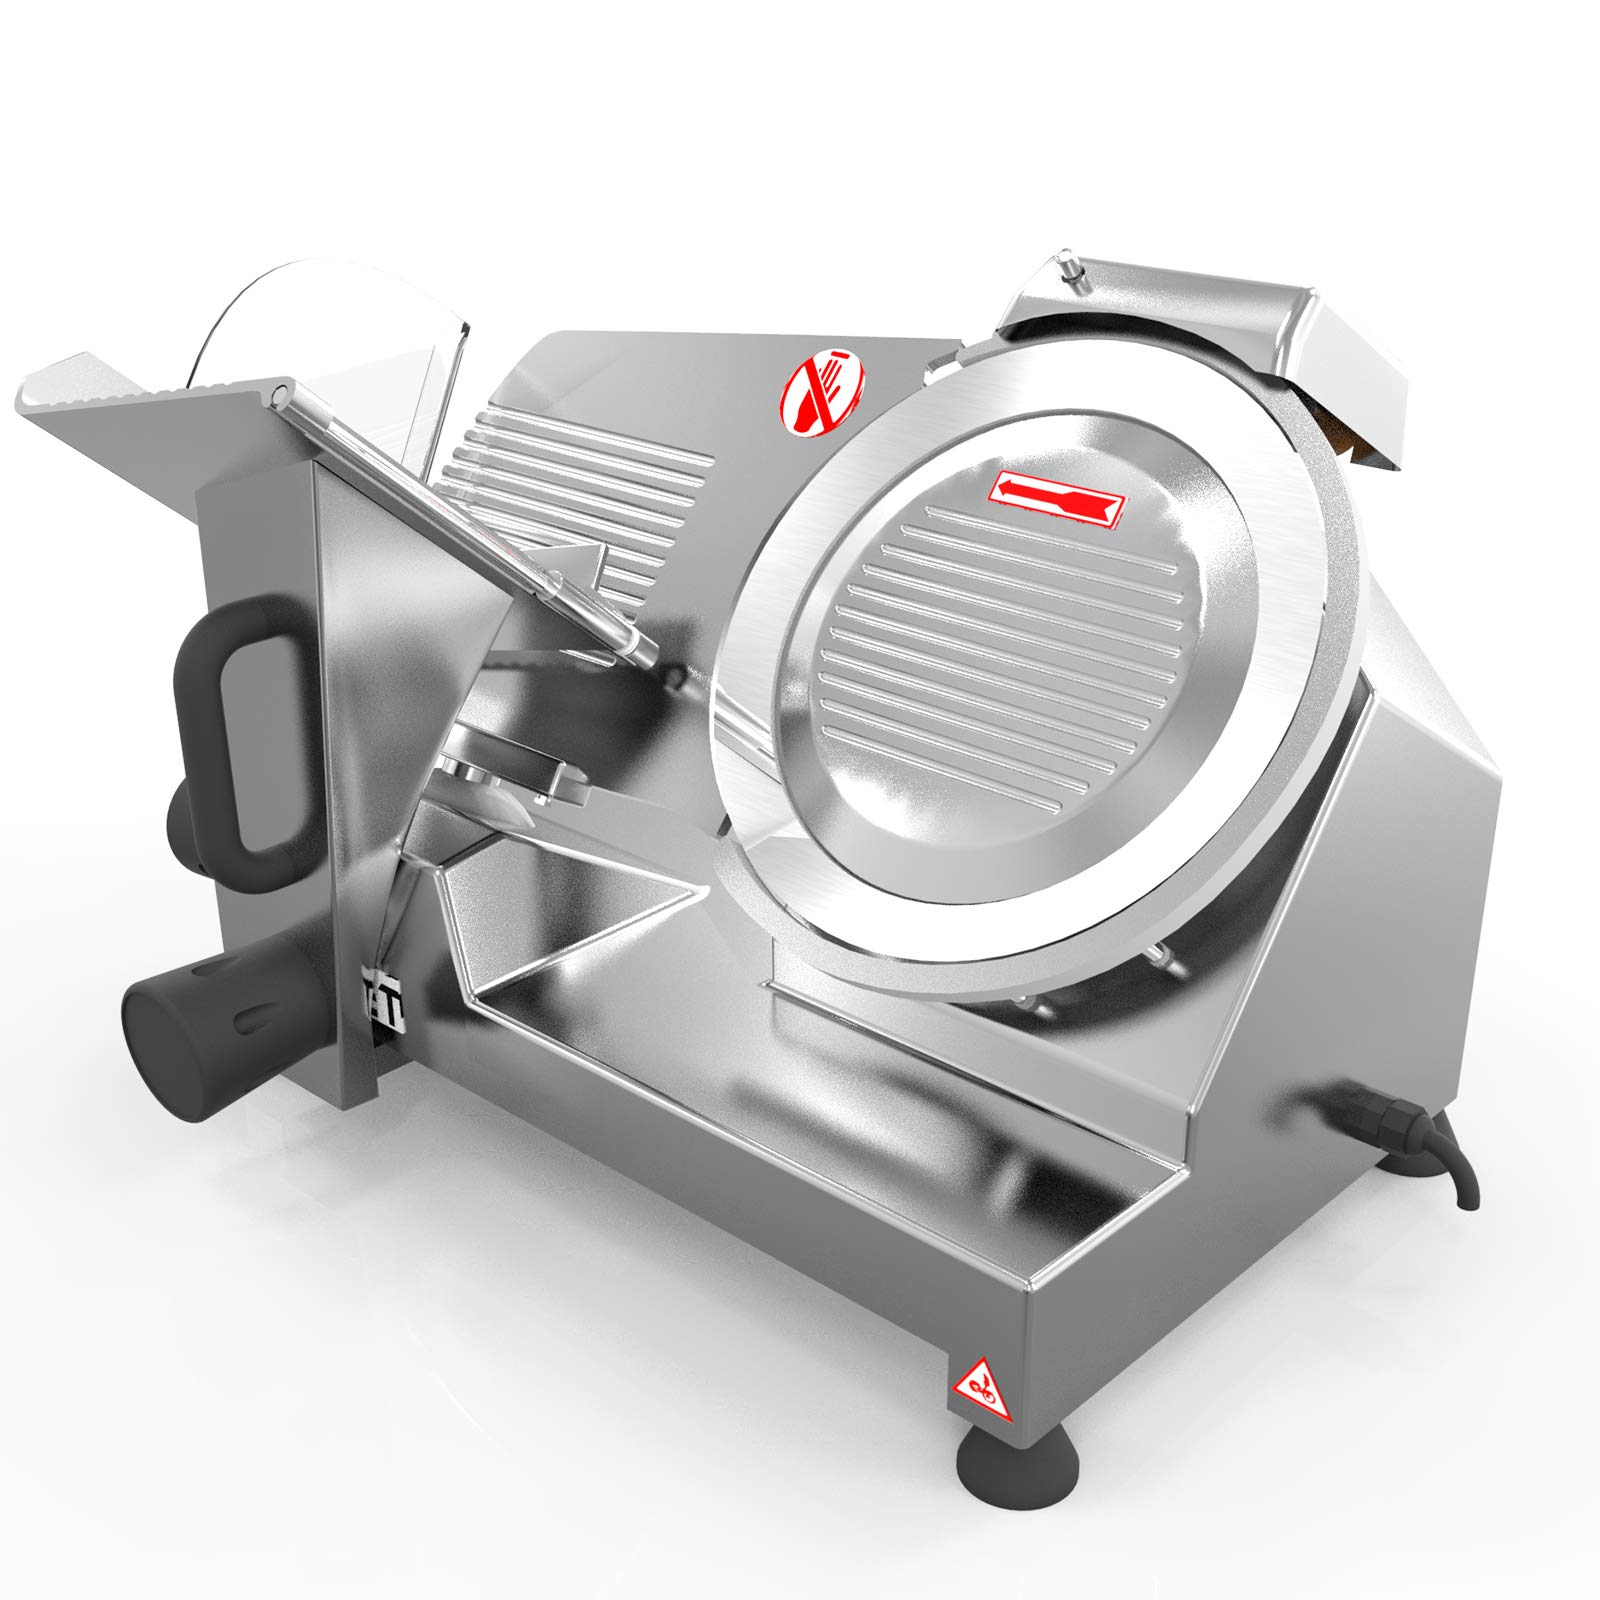 KUPPET 8'' inch Stainless Steel Electric Meat Slicer Premium Chromium-plated Carbon Steel Blade, Home Kitchen Deli Meat Food Vegetable Cheese Cutter, Commercial Coffee Shop/restaurant and Home Use 240W Low Noises by KUPPET